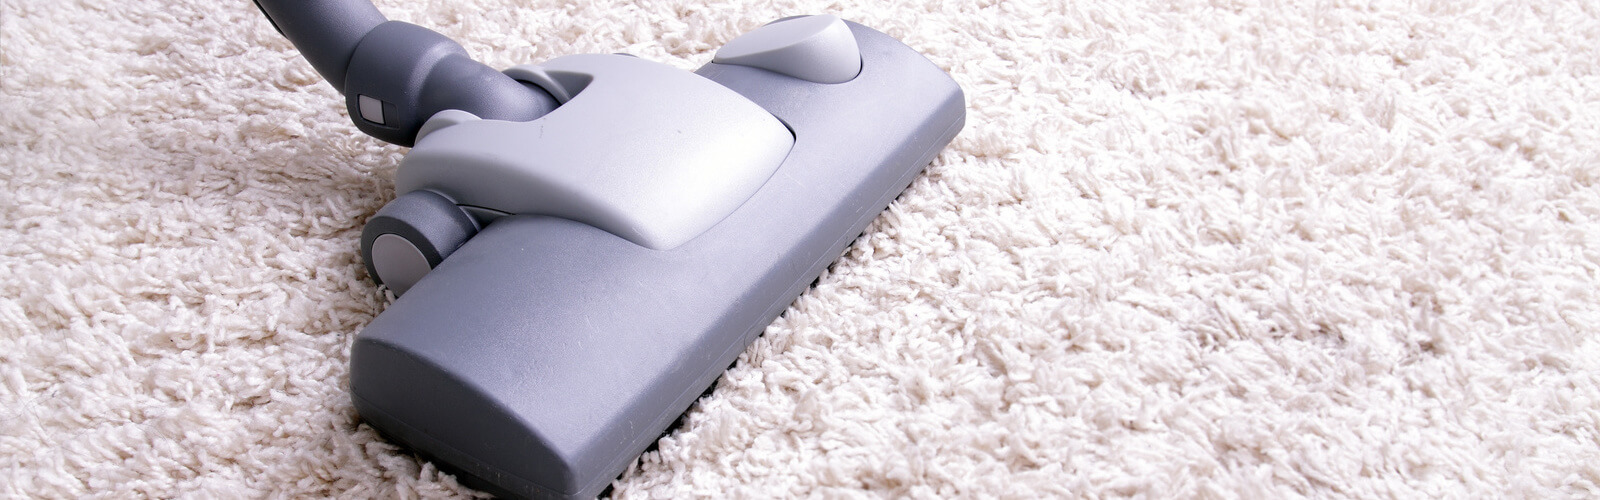 Carpet Cleaning Kansas City Mo Friendly Cleaning Services